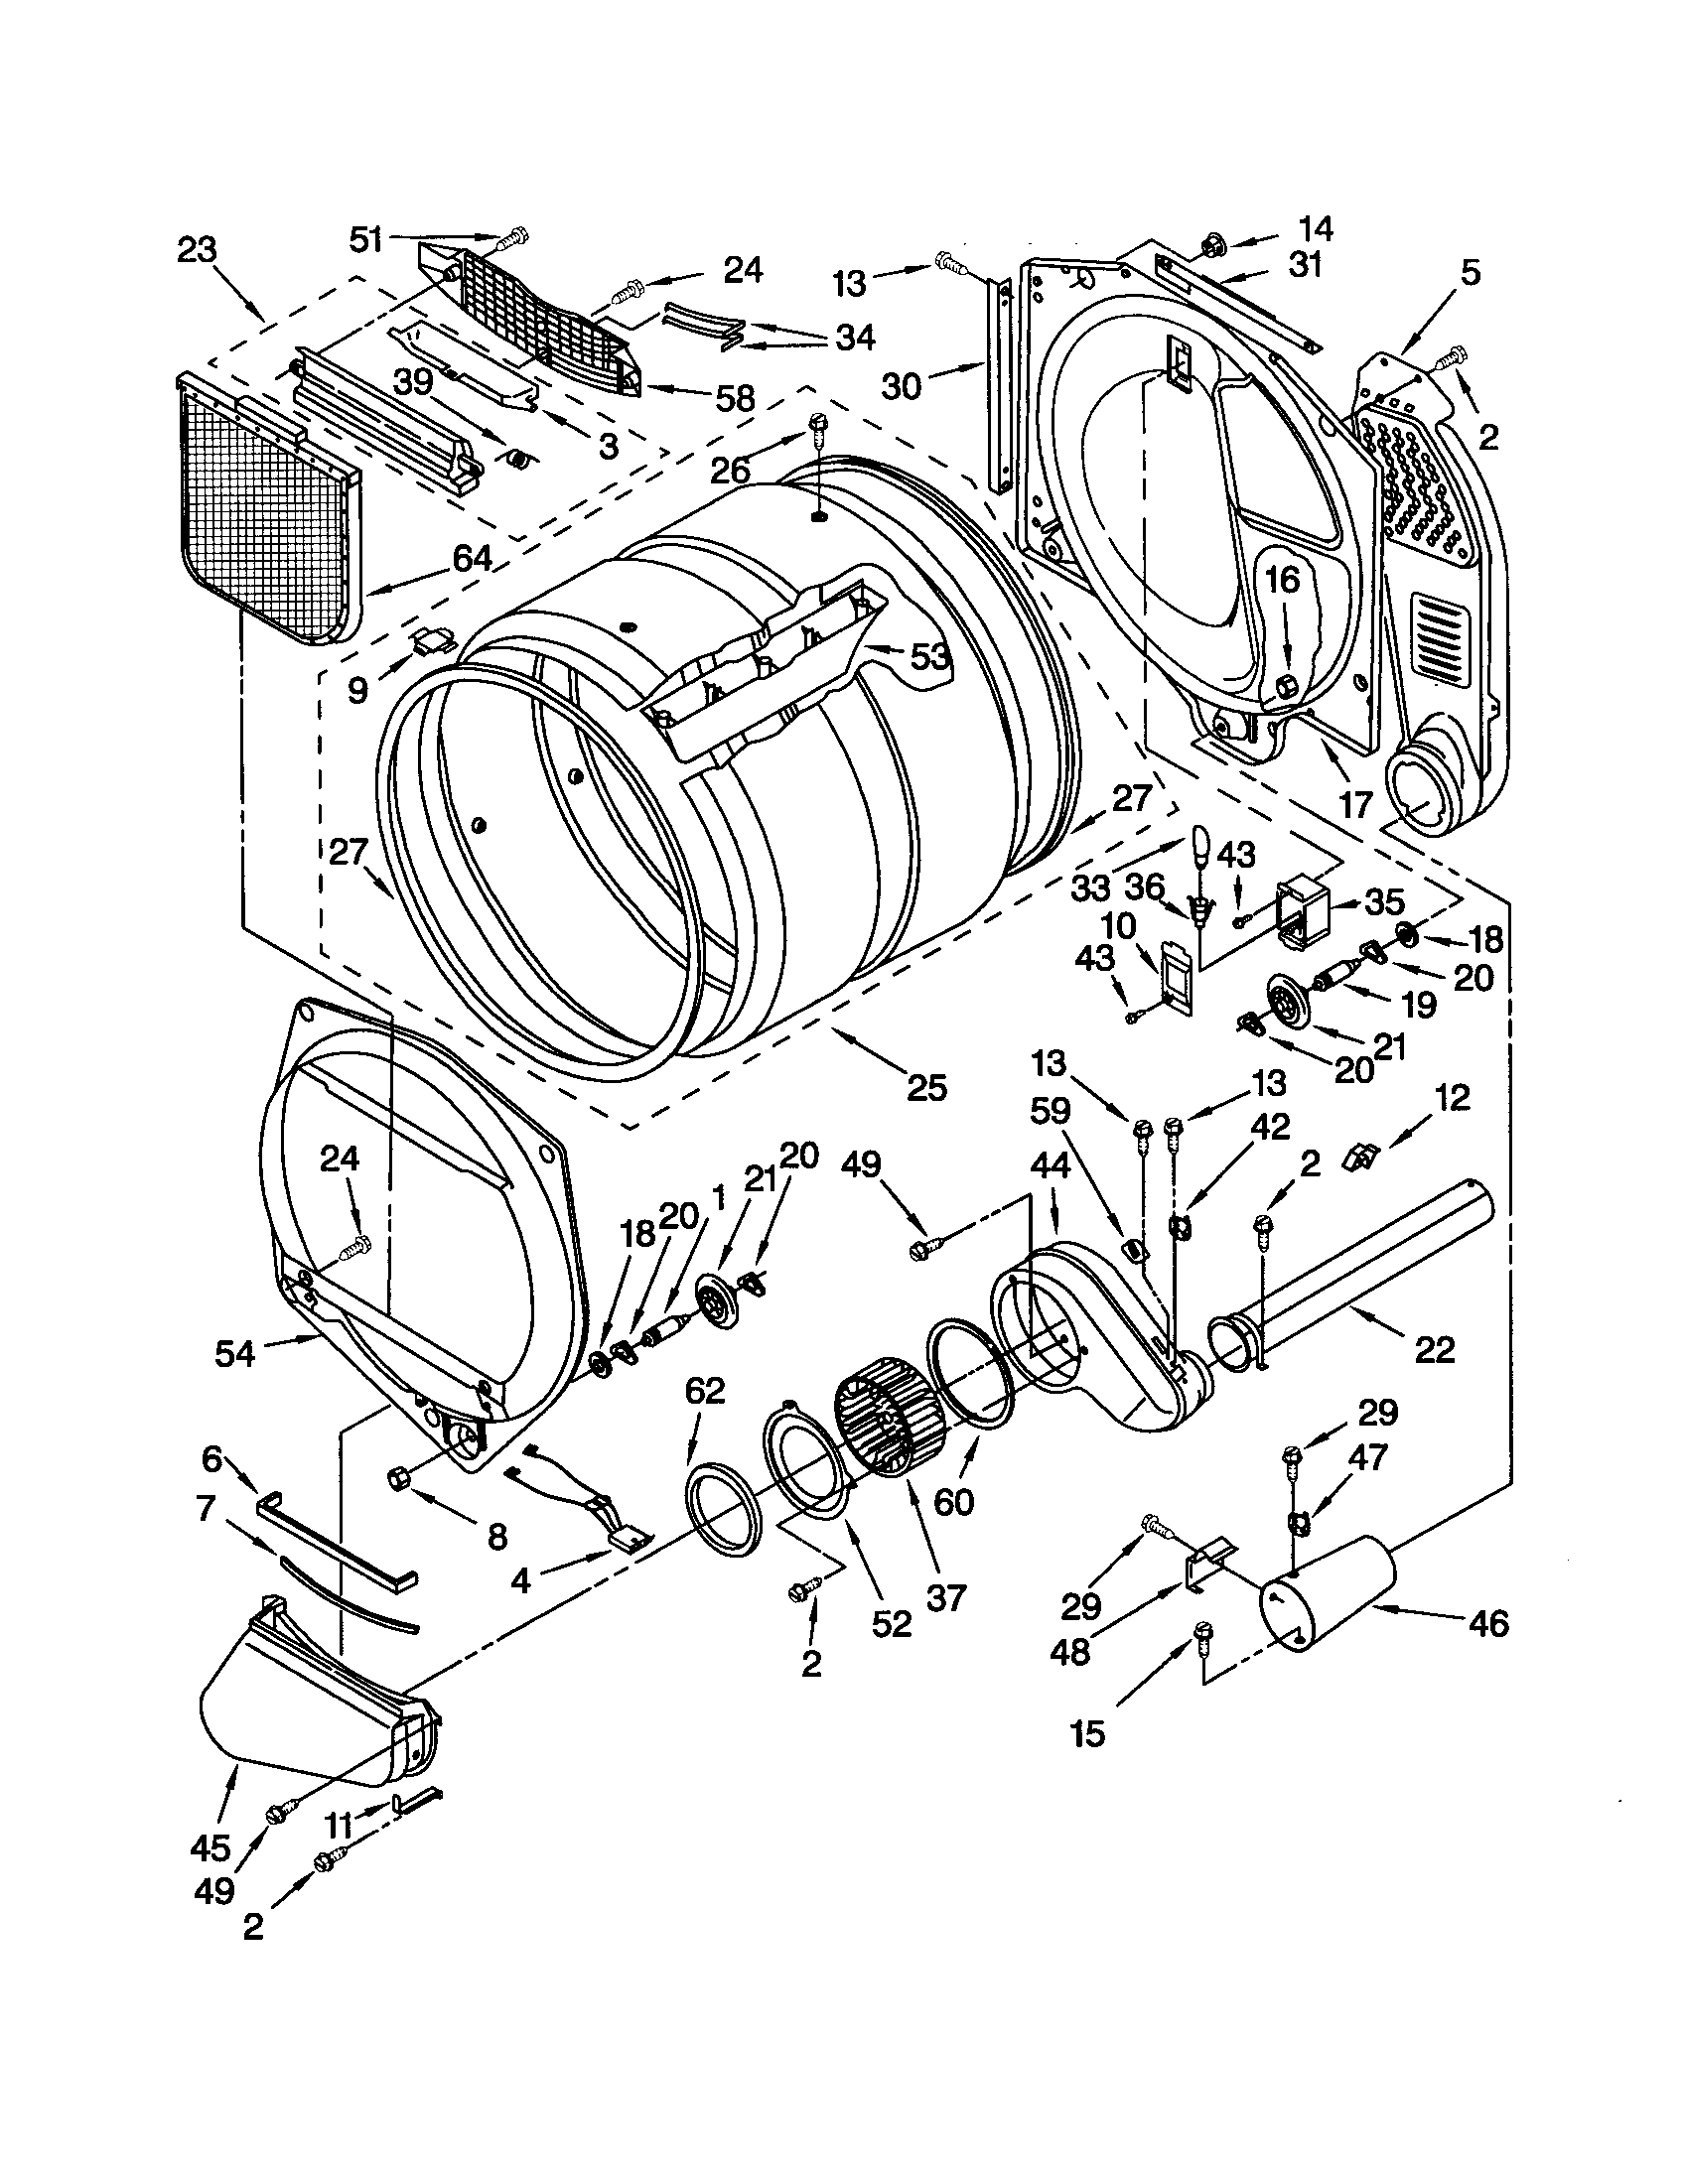 hight resolution of fuse location moreover whirlpool dryer belt diagram on kenmore diagram further kenmore dryer fuse location moreover whirlpool dryer